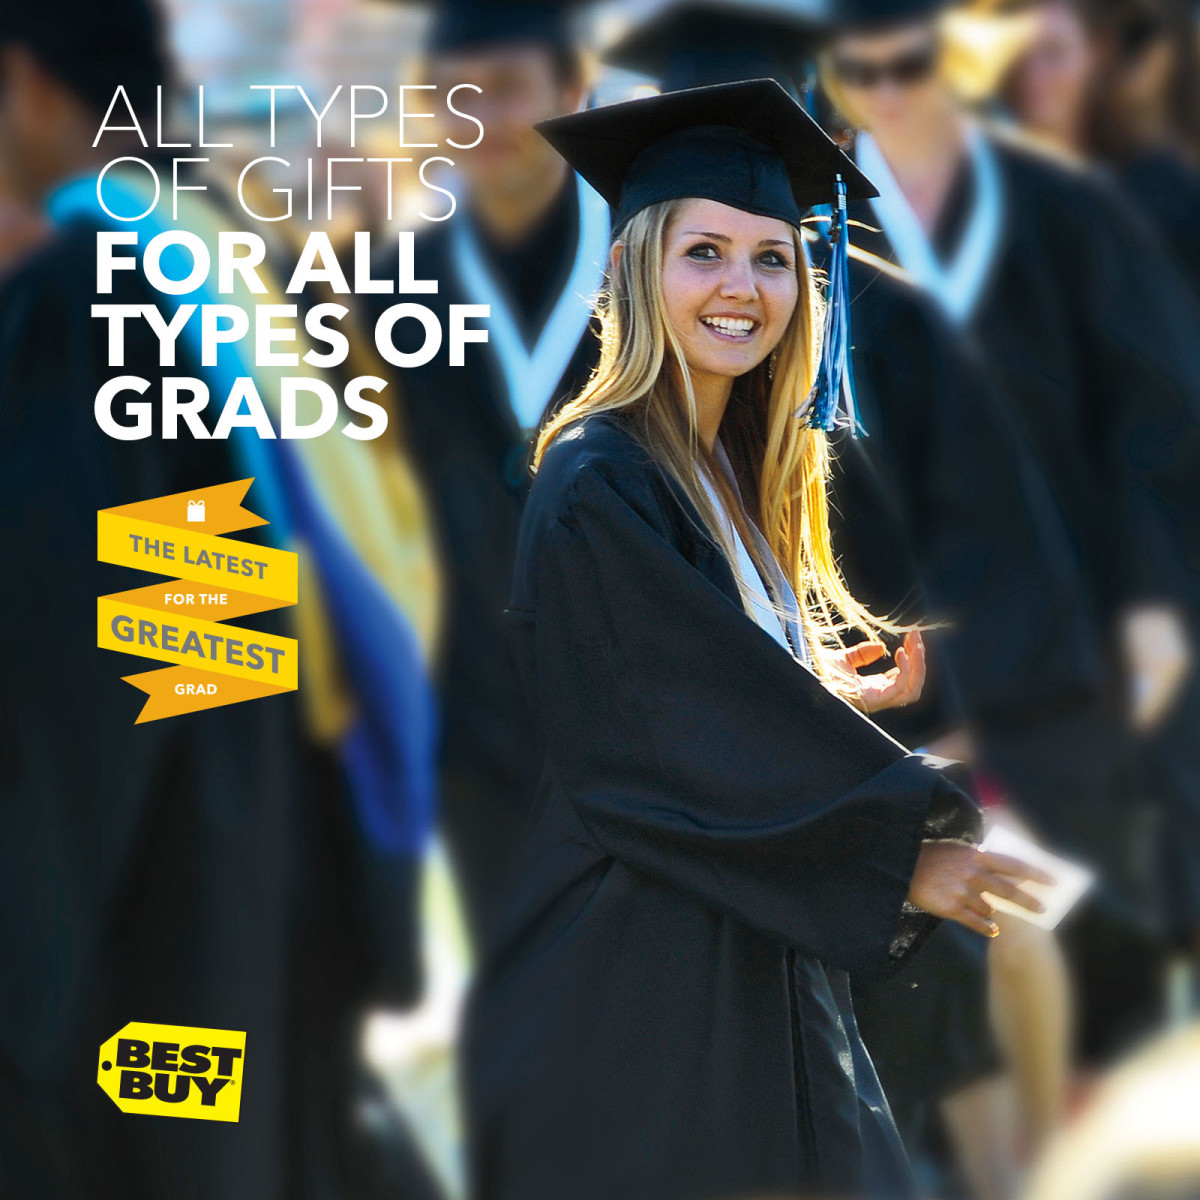 The Greatest Gifts for Grads at Best Buy #GreatestGrad